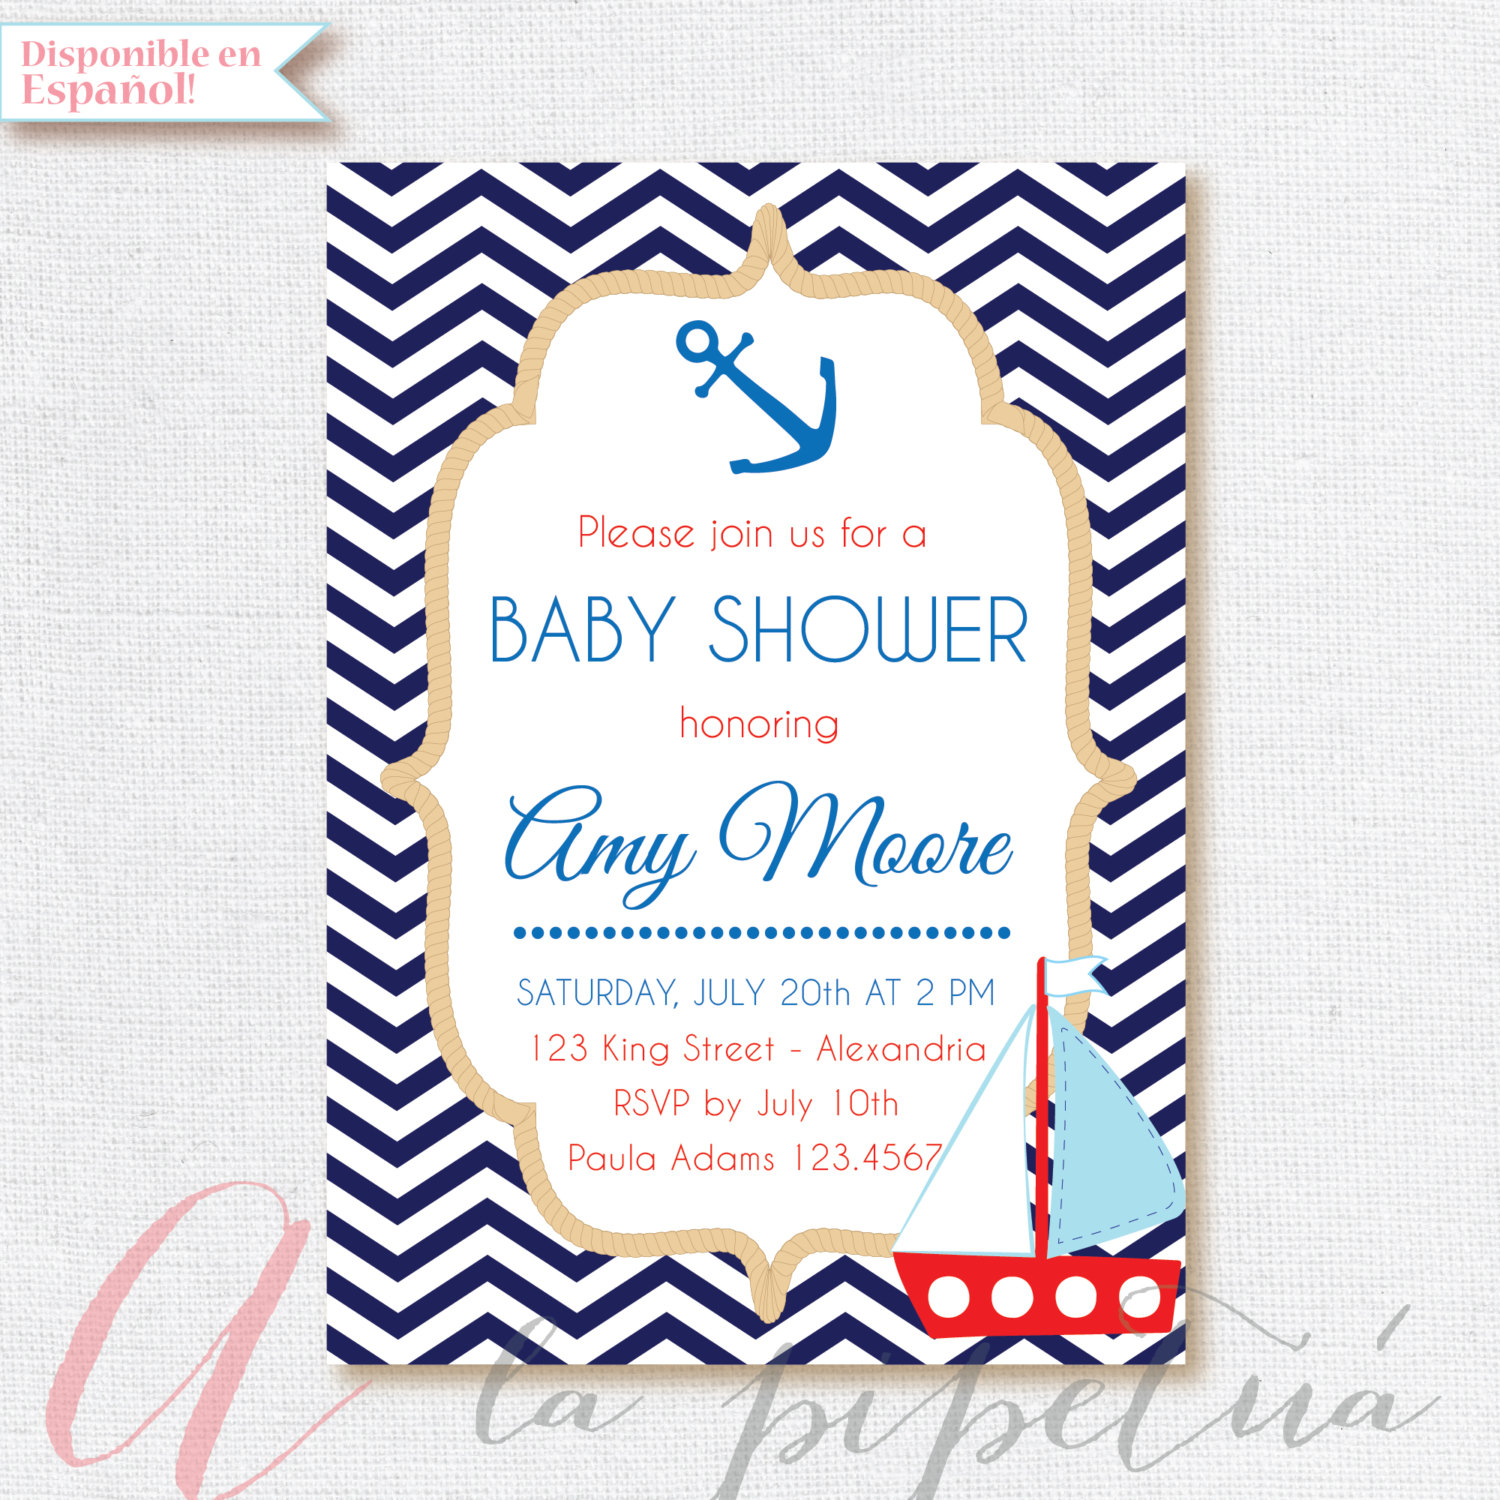 Modern Great Invitaciones Para Baby Shower De Ni O 24 - Wyllieforgovernor with Invitaciones Para Baby Shower De Niño